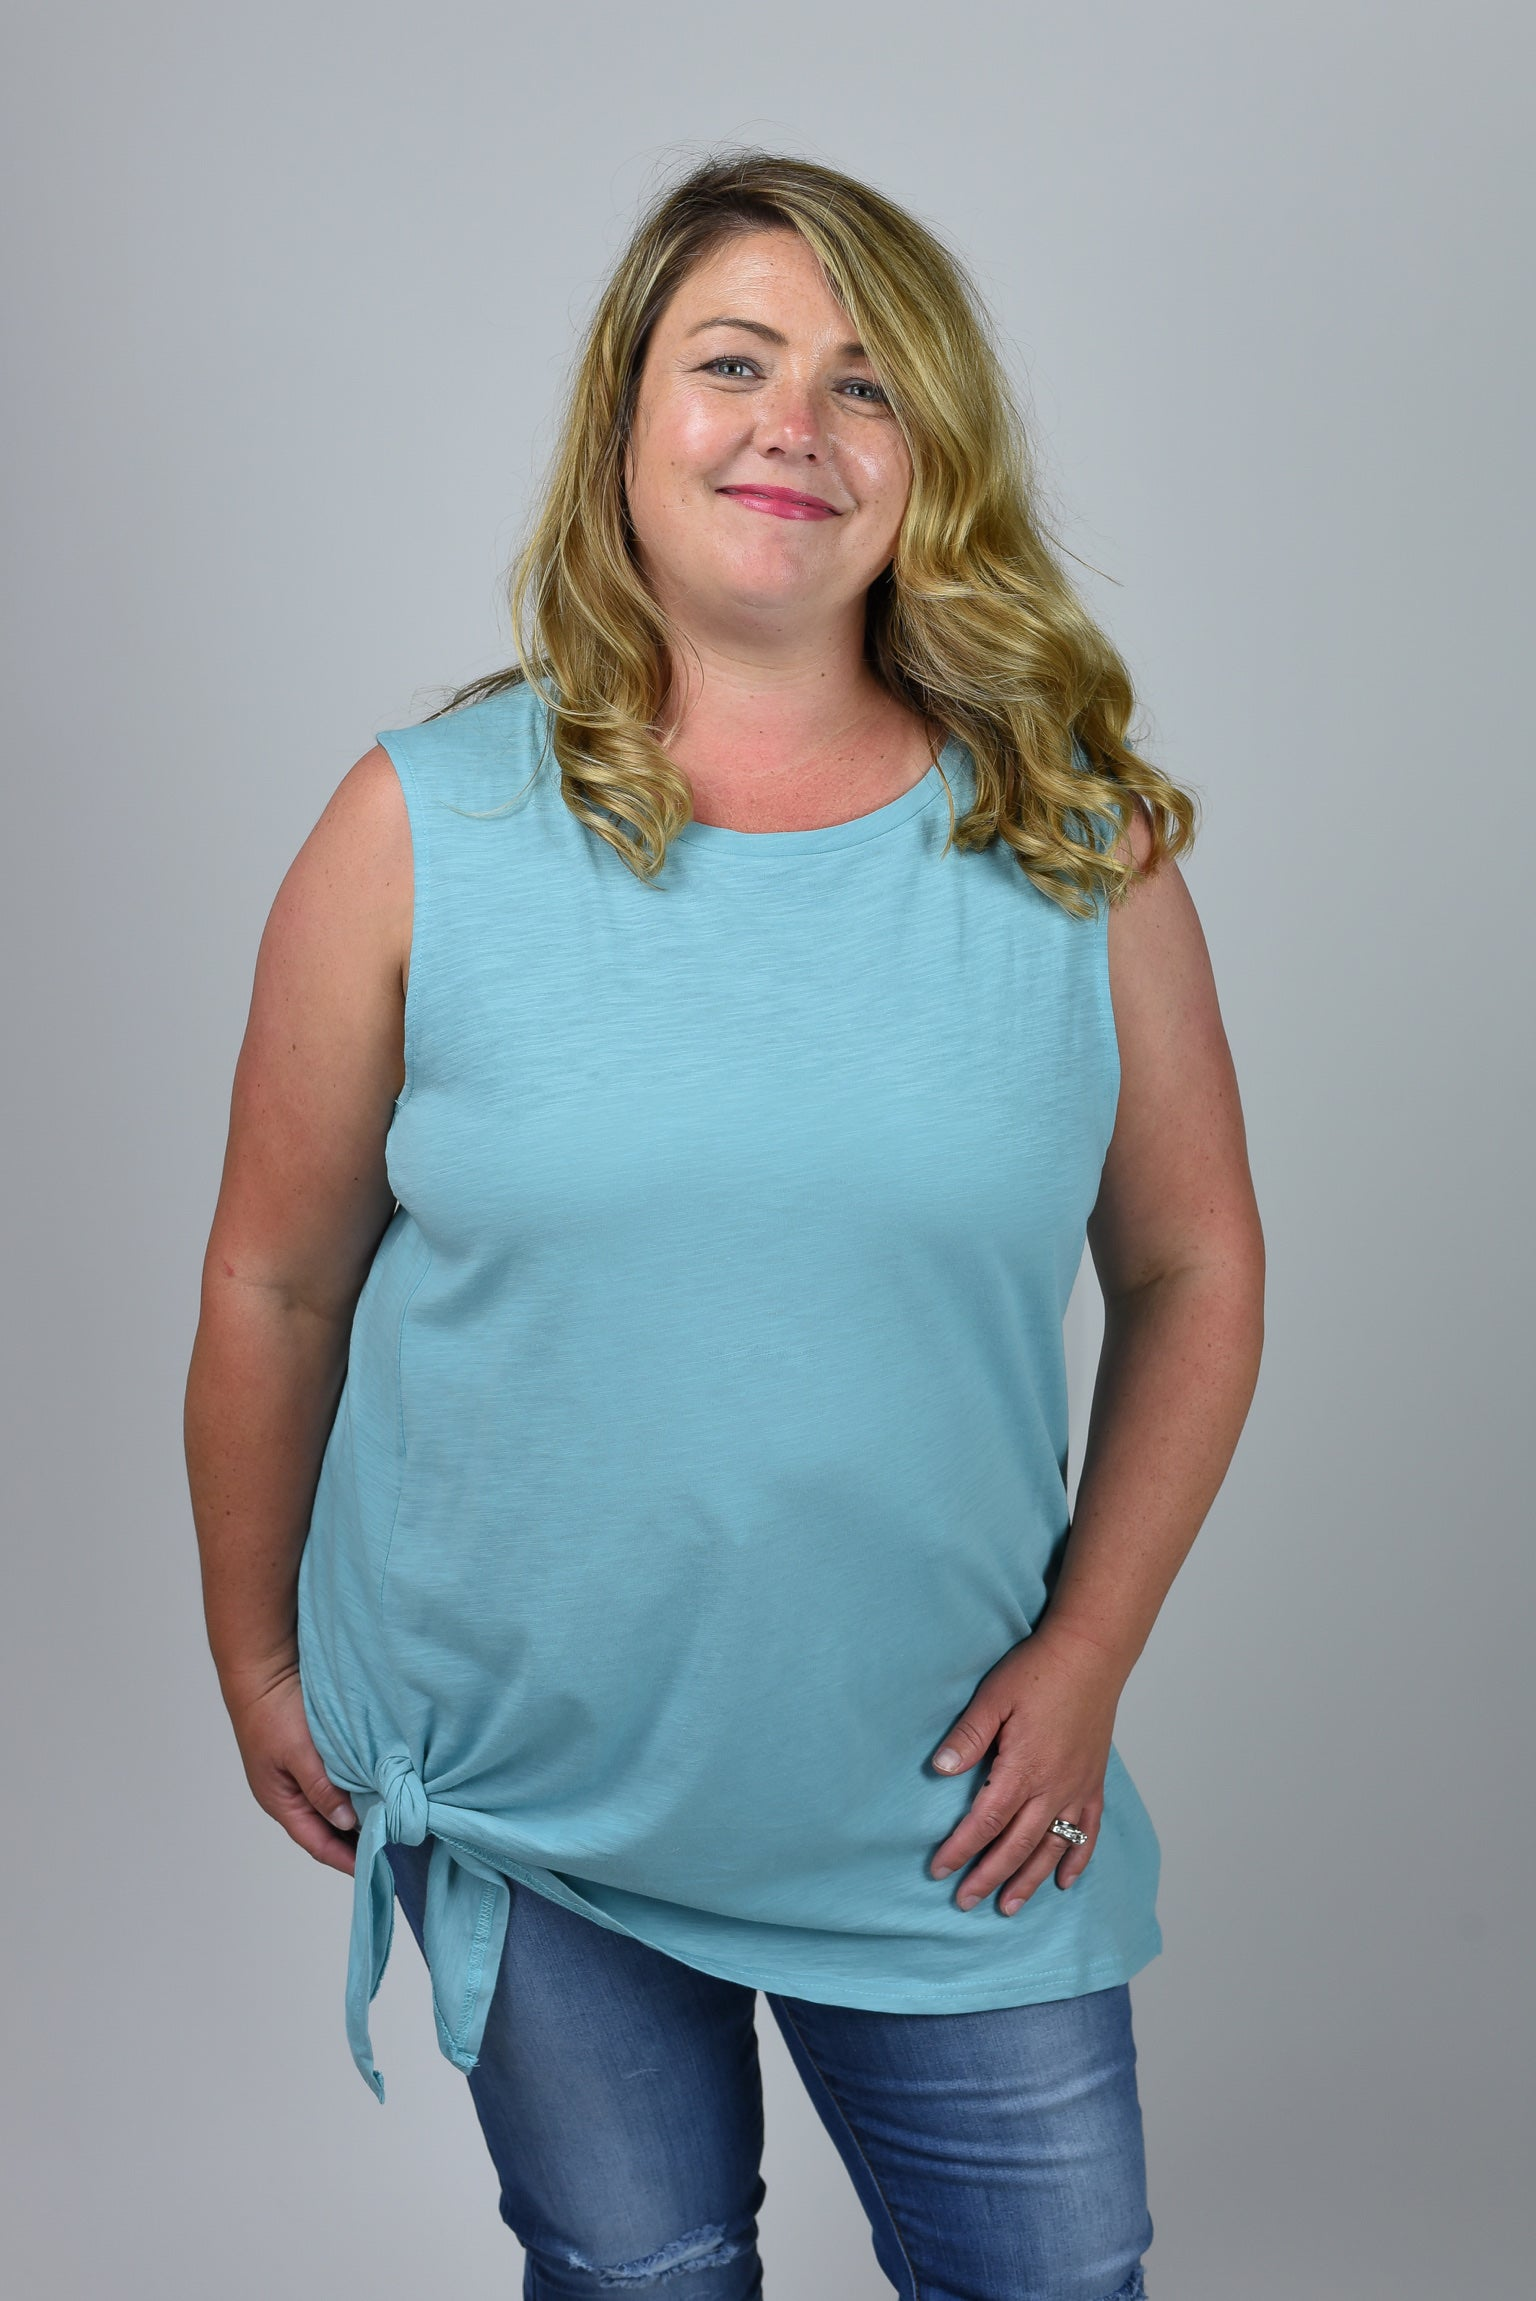 Straight Forward Teal Front Tie Tank- Curvy